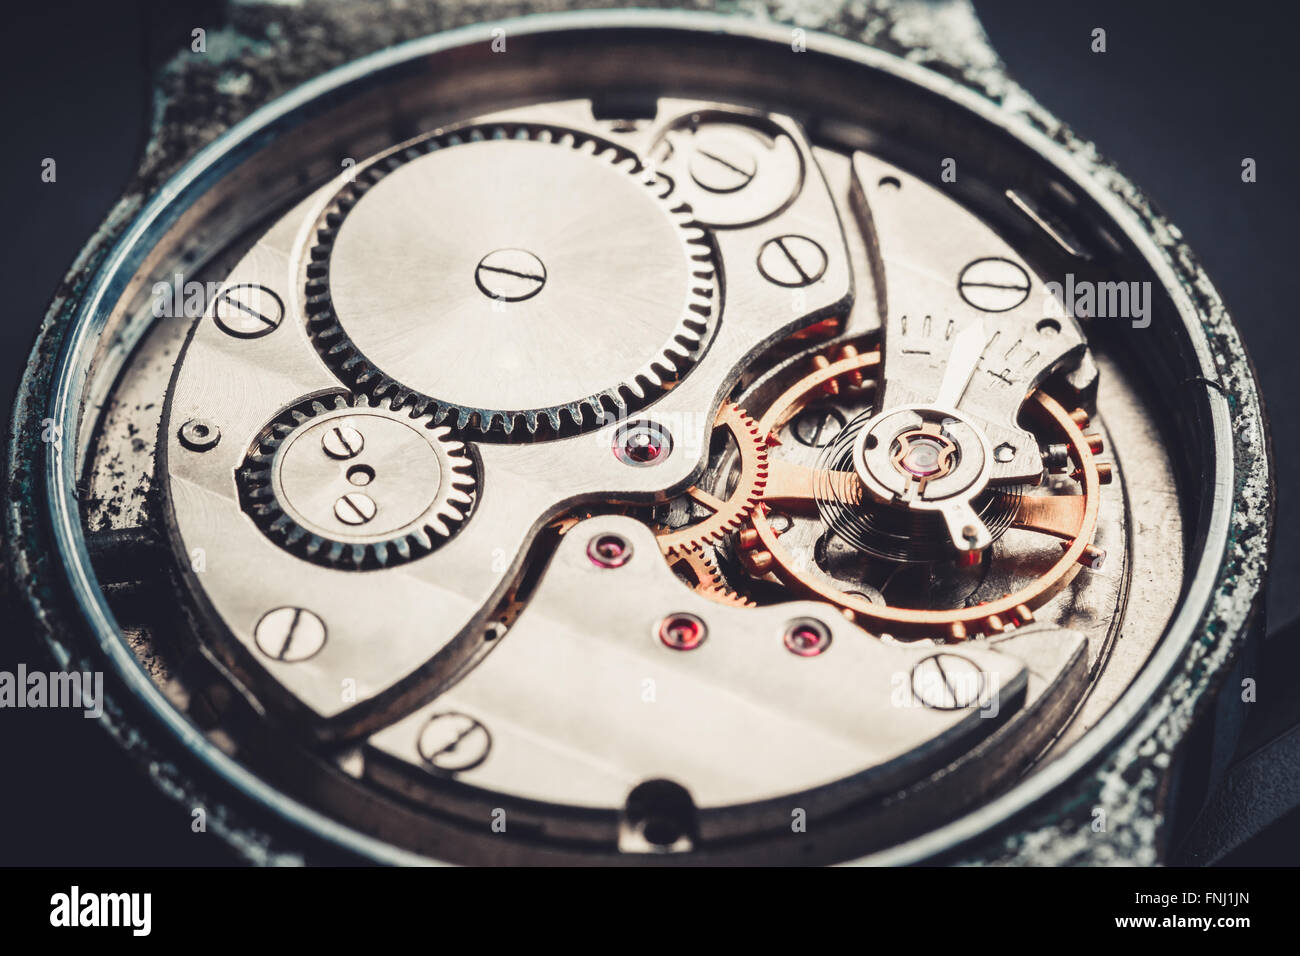 mechanism antique vintage wrist watch beautiful original black and metallic background Stock Photo